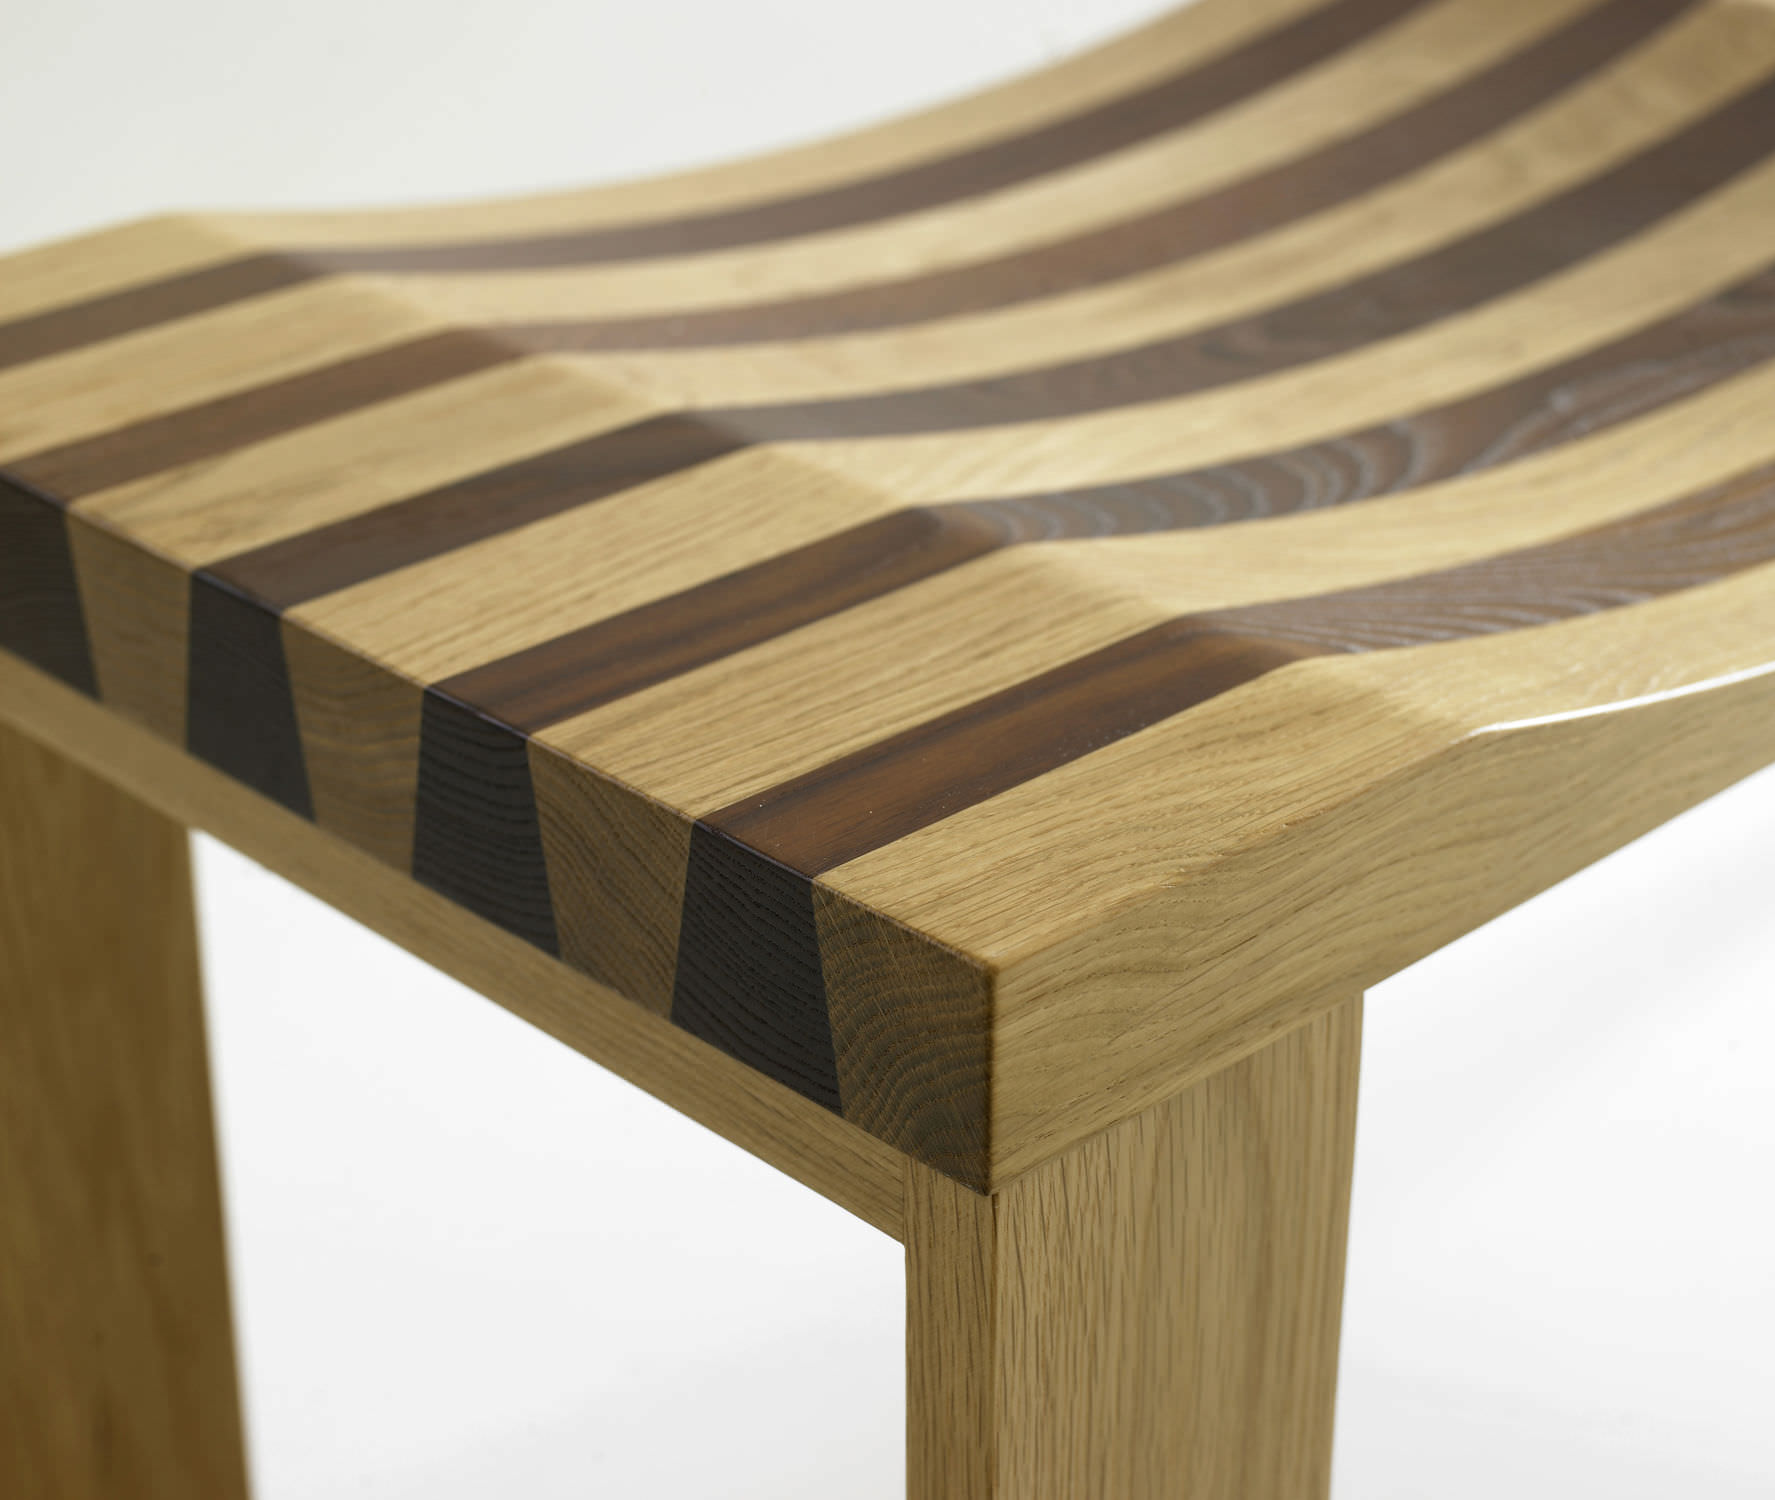 Magnificent Contemporary Bench Wooden Modular Museum Sidebyside Lamtechconsult Wood Chair Design Ideas Lamtechconsultcom